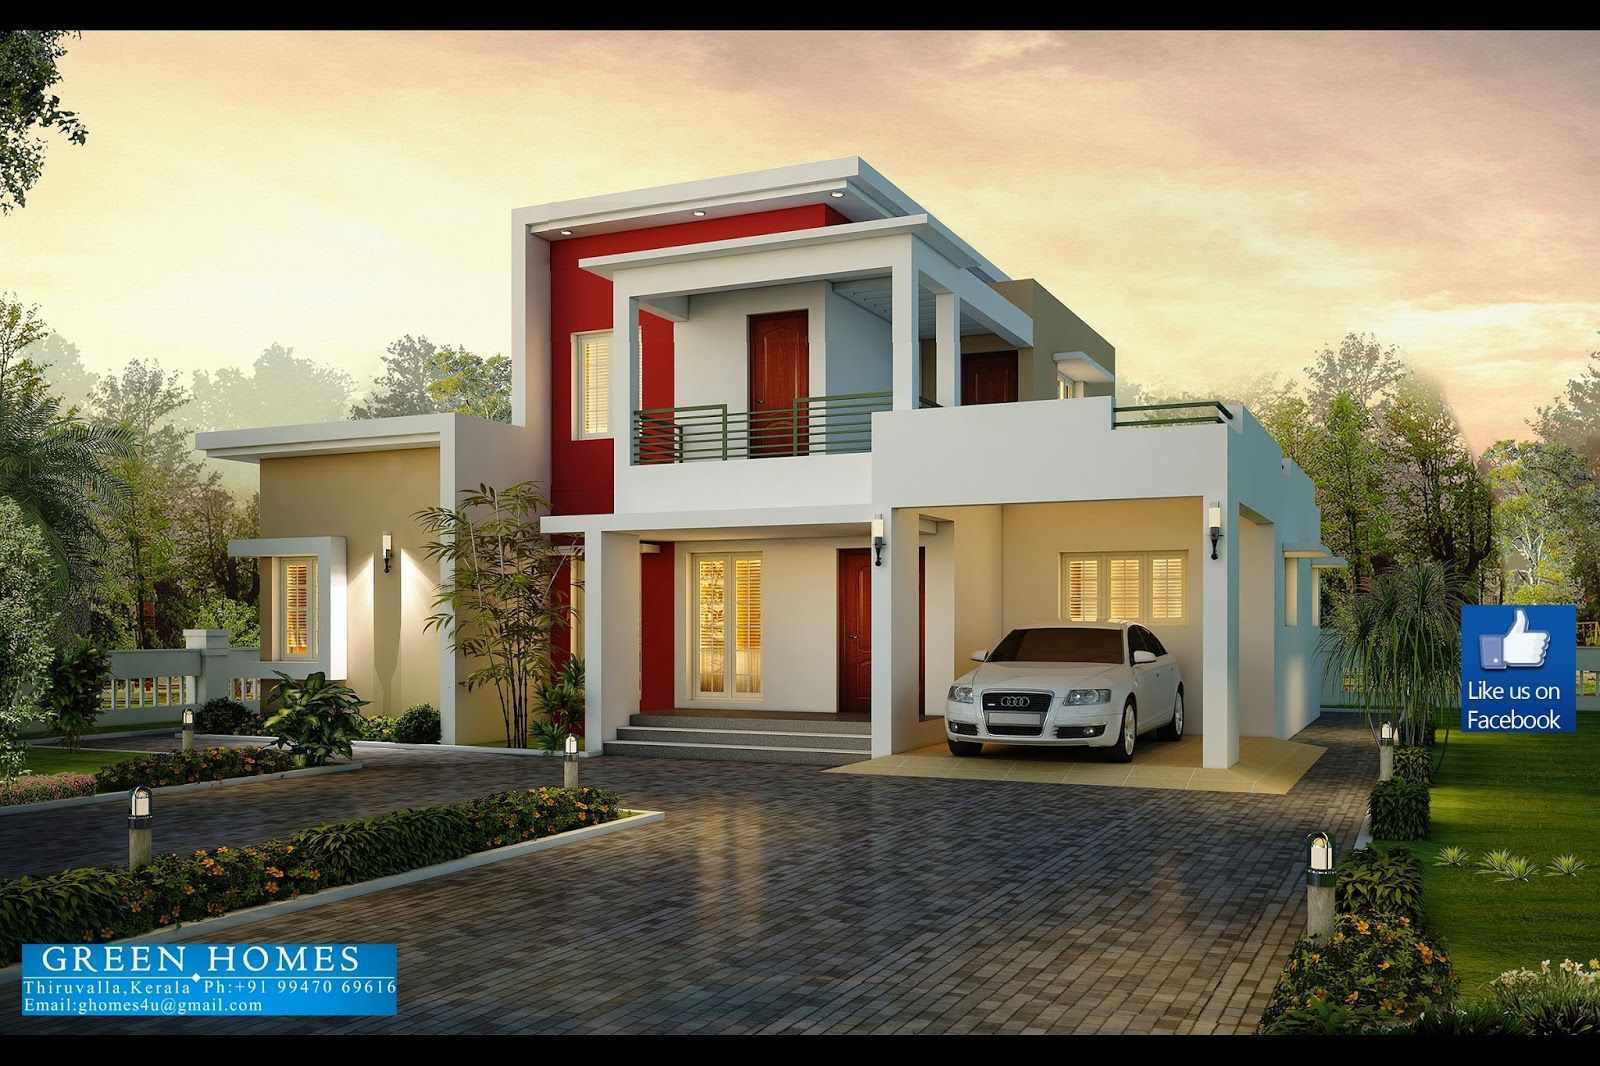 3 bedroom modern house design ideas 2017 2018 Modern house company